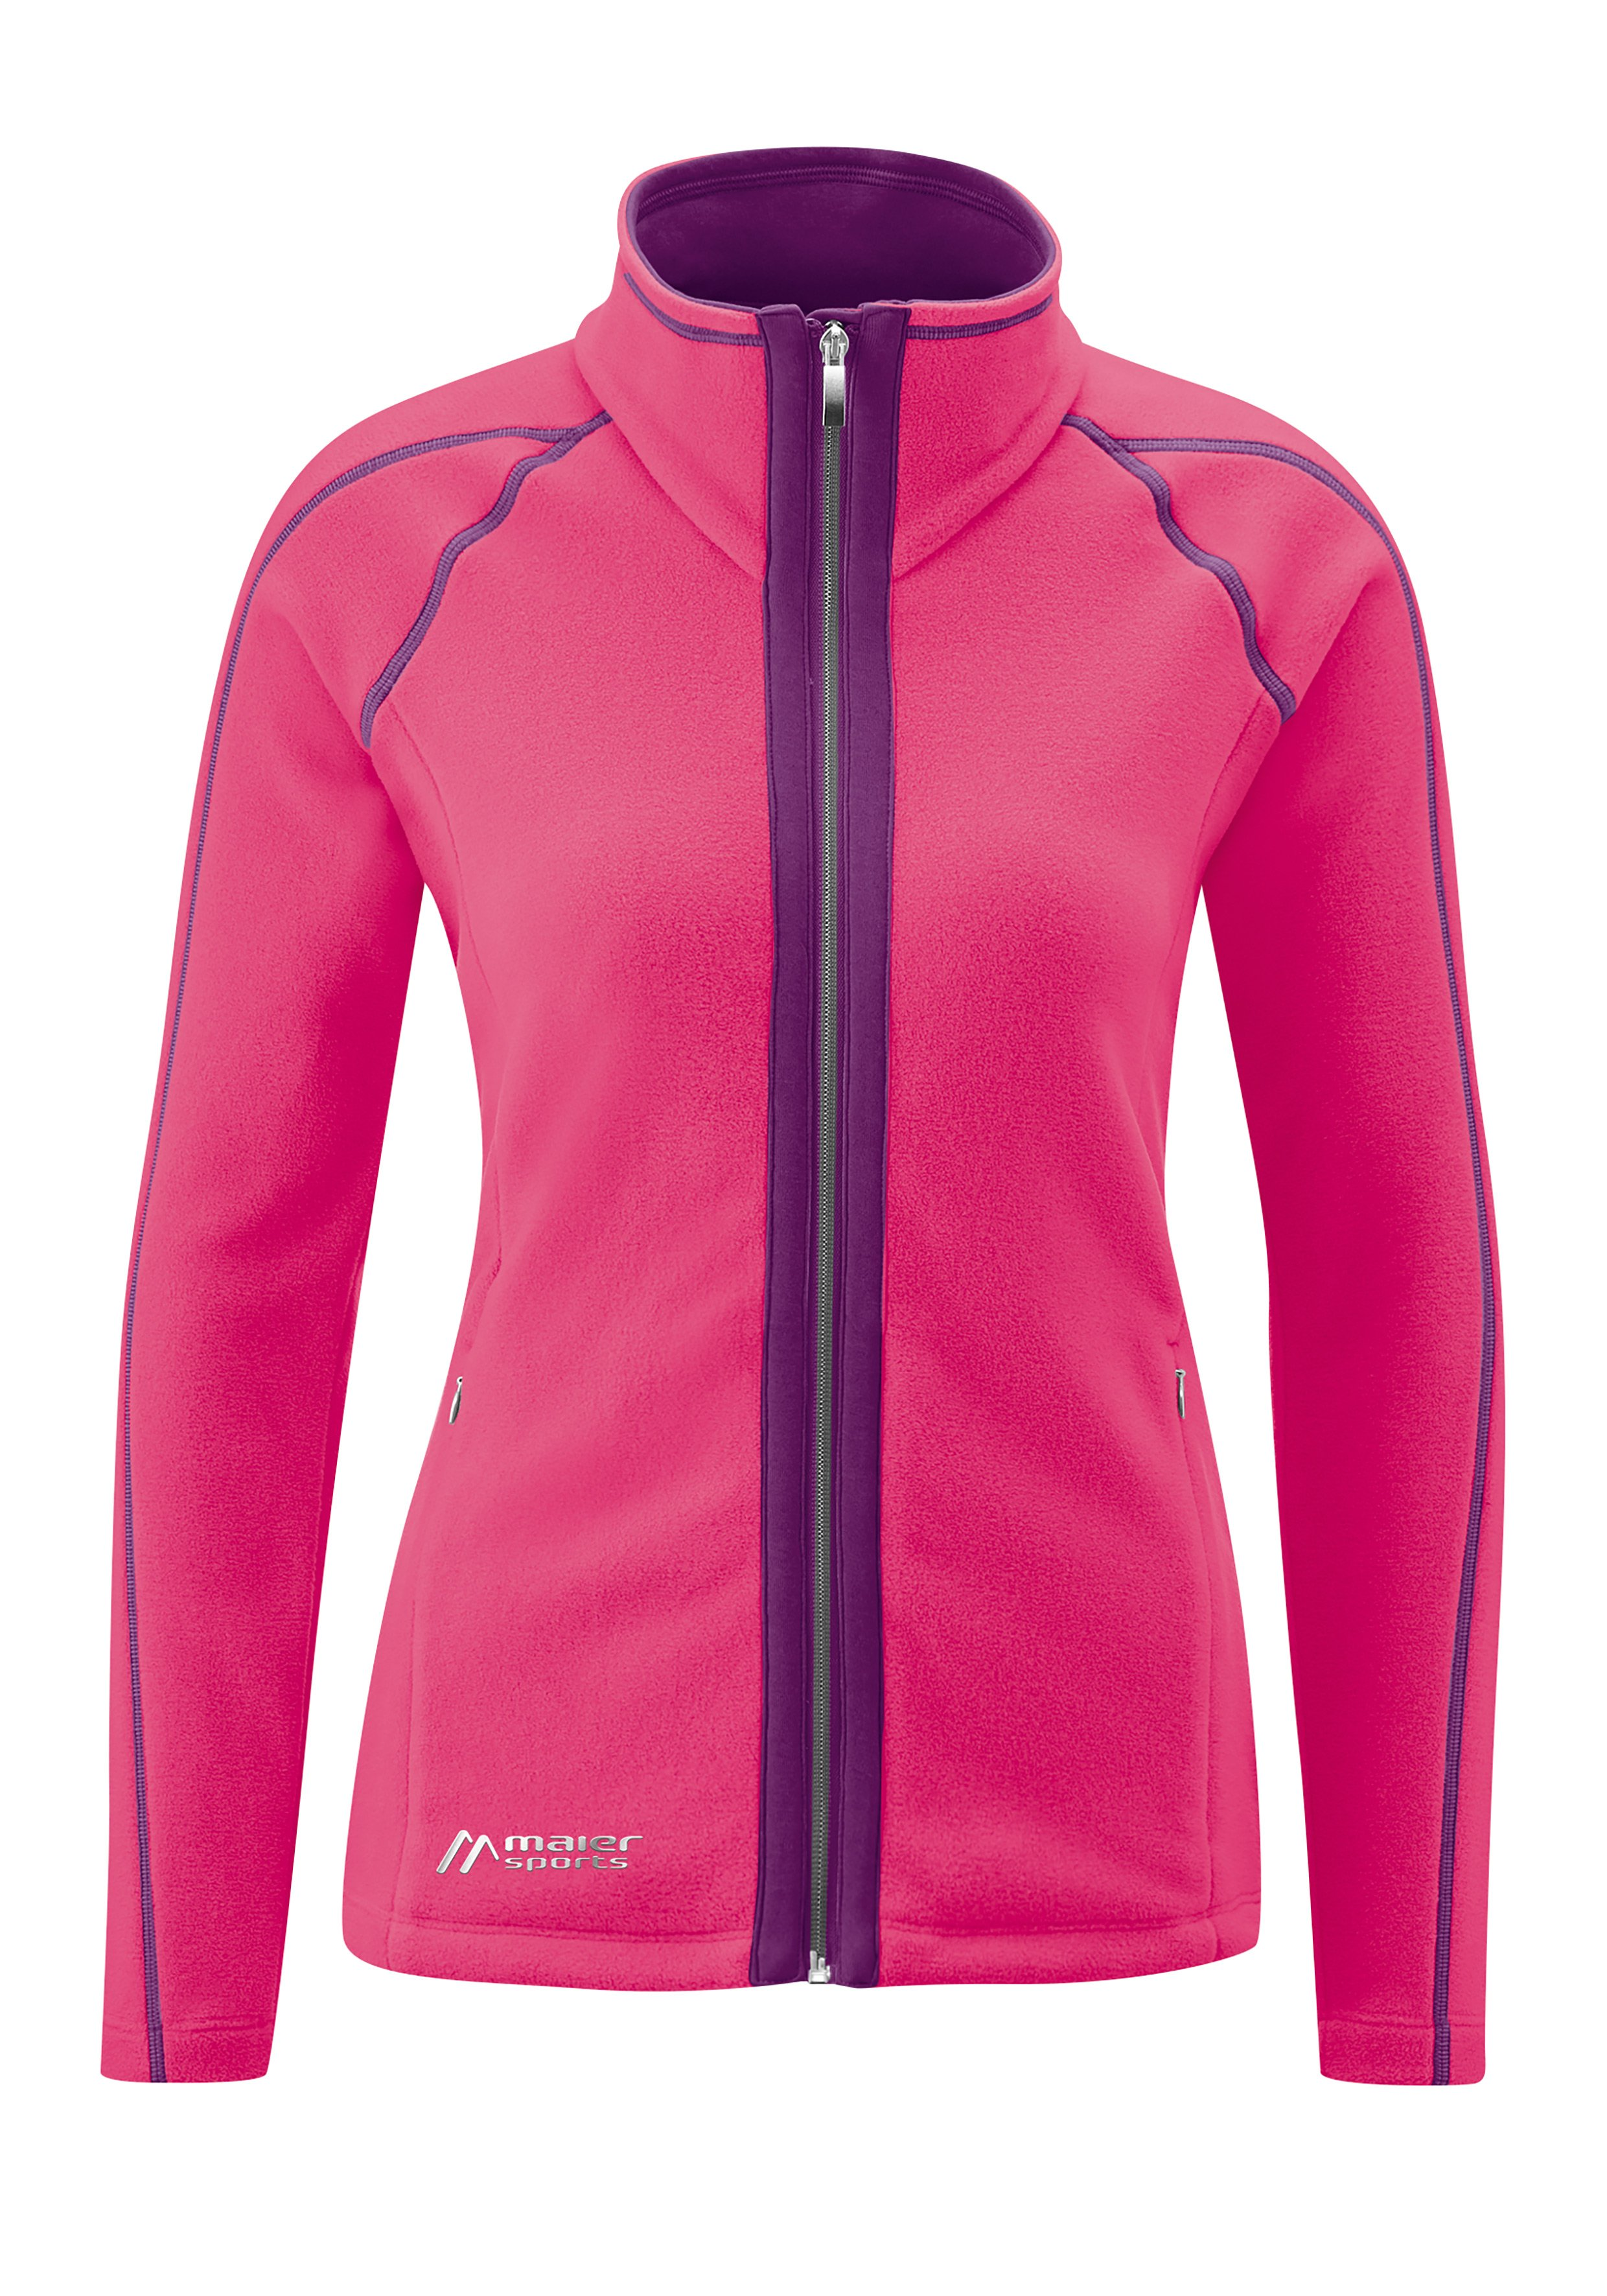 Maier Sports Fleecejacke Gentiana | Sportbekleidung > Sportjacken > Fleecejacken | maier sports